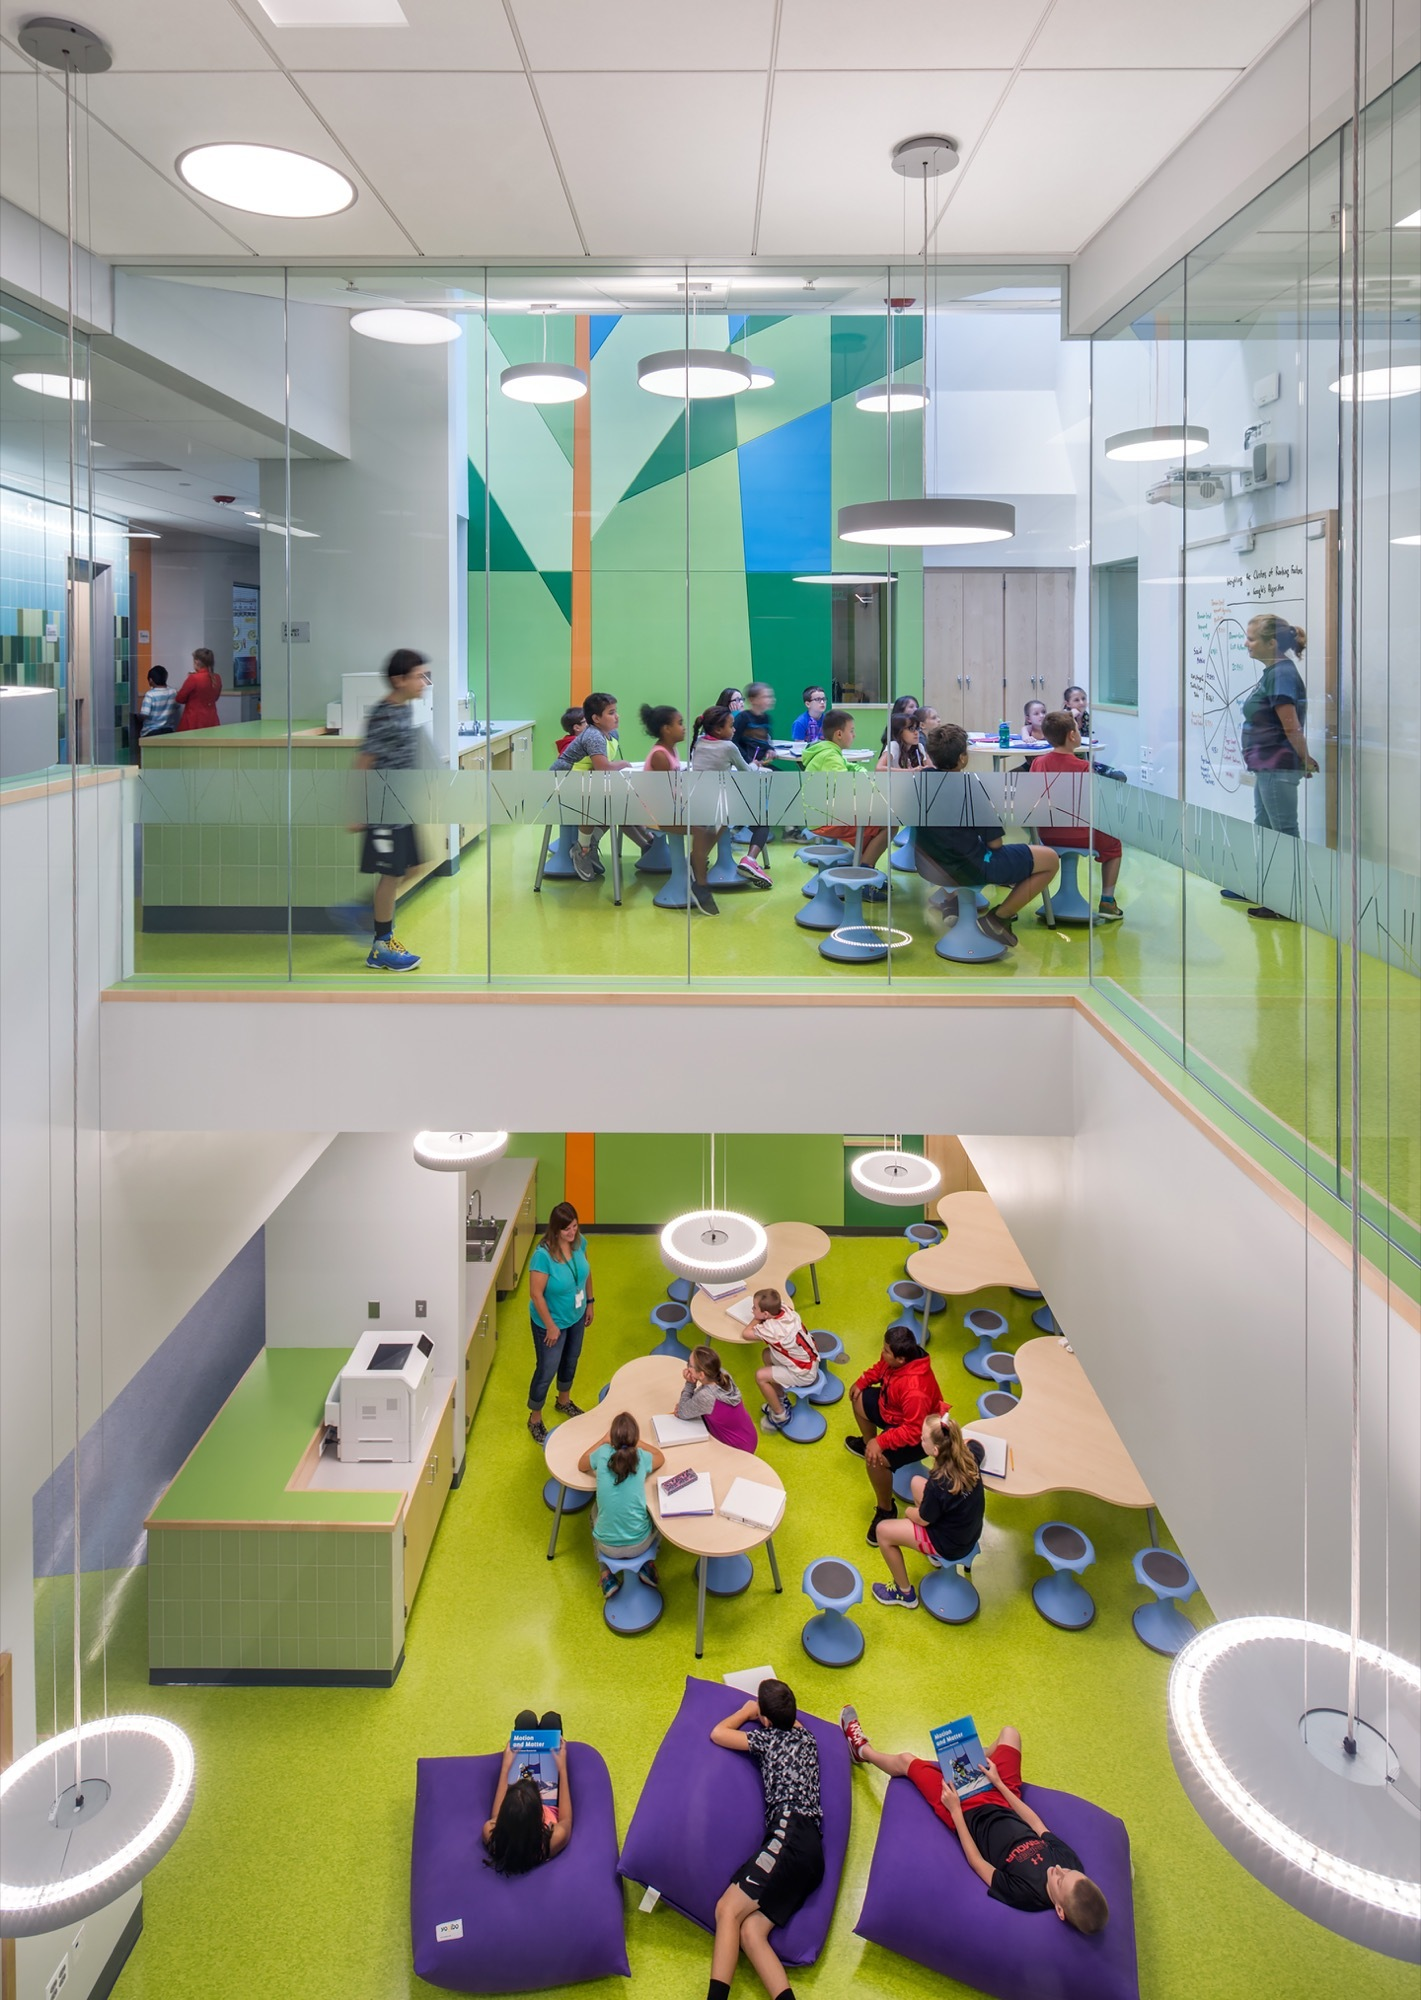 Woodland elementary school hmfh architects archdaily for Architecture interior design schools